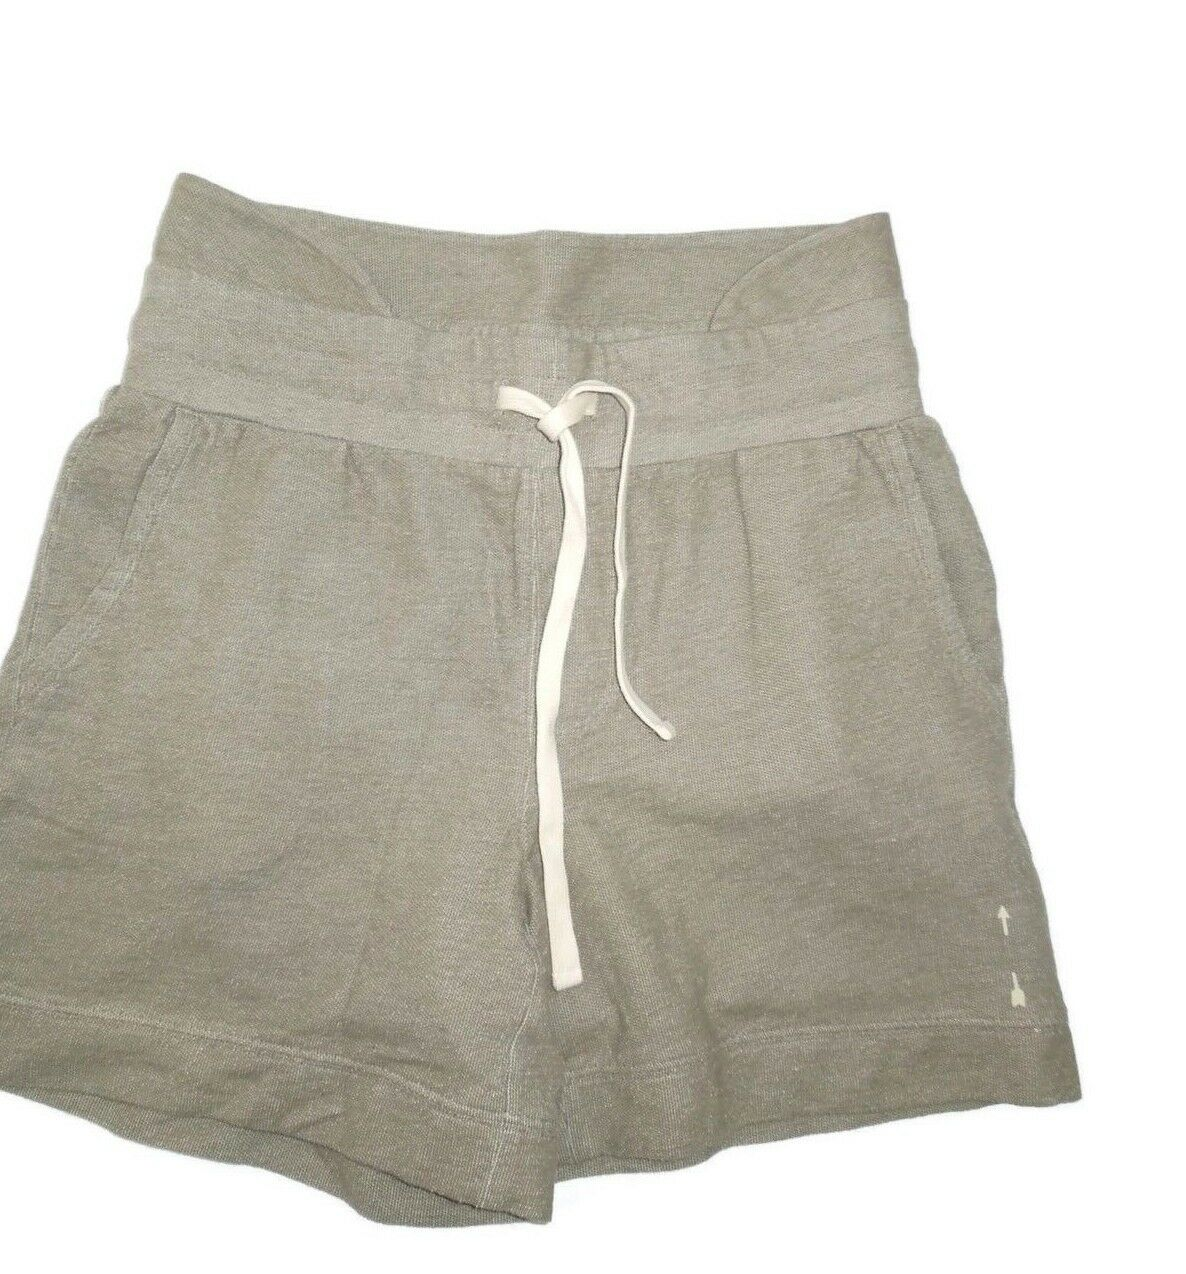 The Upside Pique garda Olive athletic lounge shorts size XXS retail